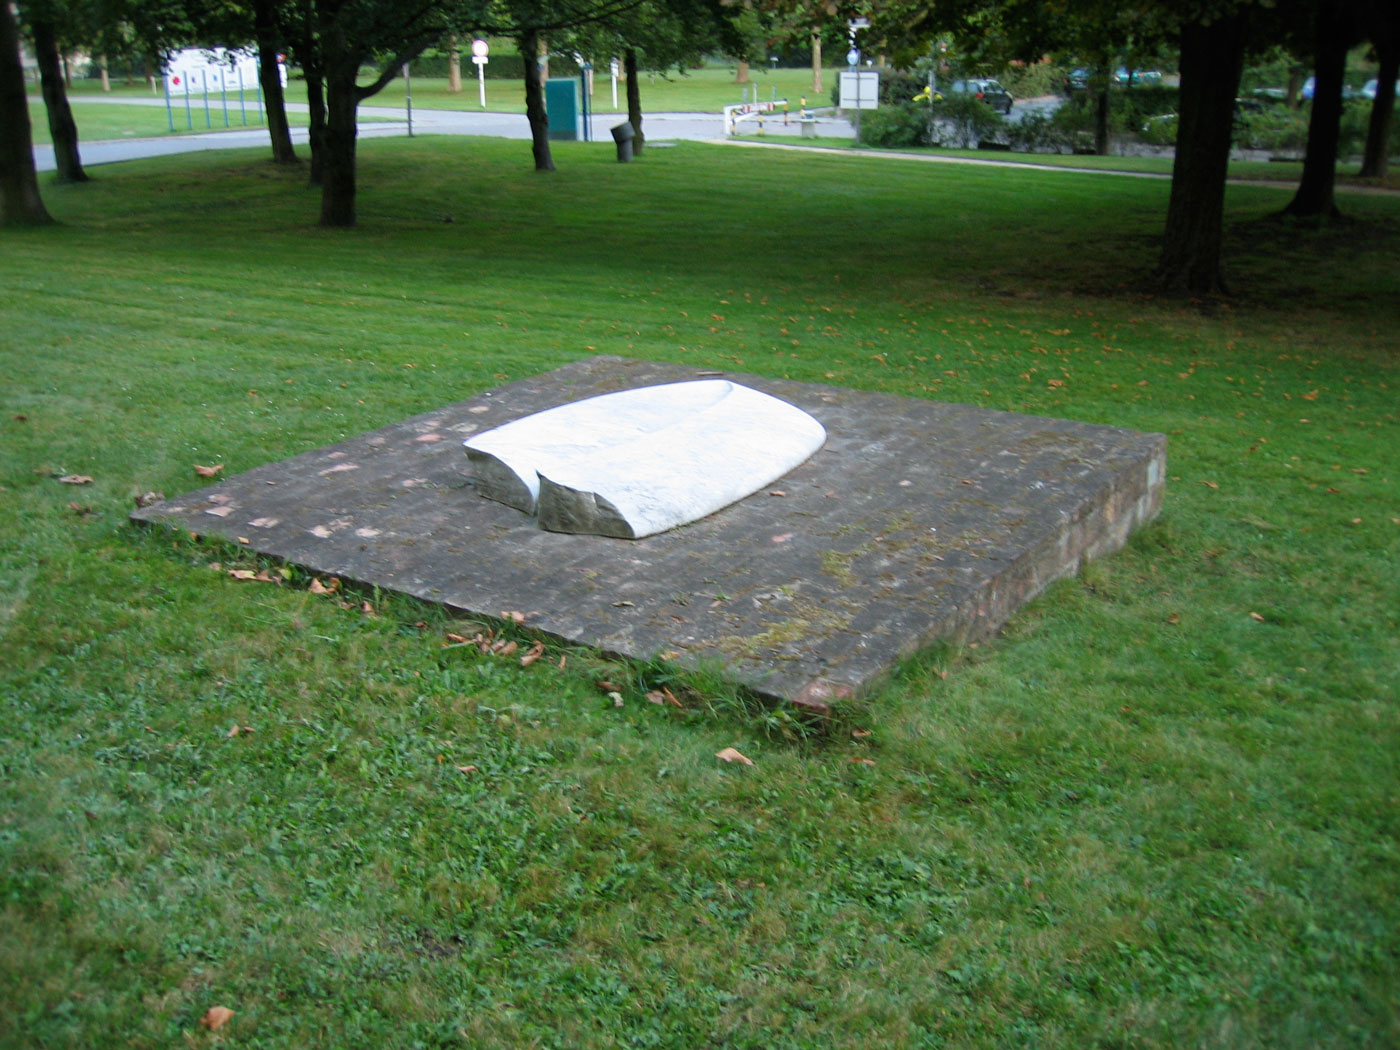 MARVEL / BRICKS,  © 1991-95, marvel sculpture and bricks base, 250 x 250 x 80 cm,  sculpture in front of the Benjamin Franklin Hospital, Berlin